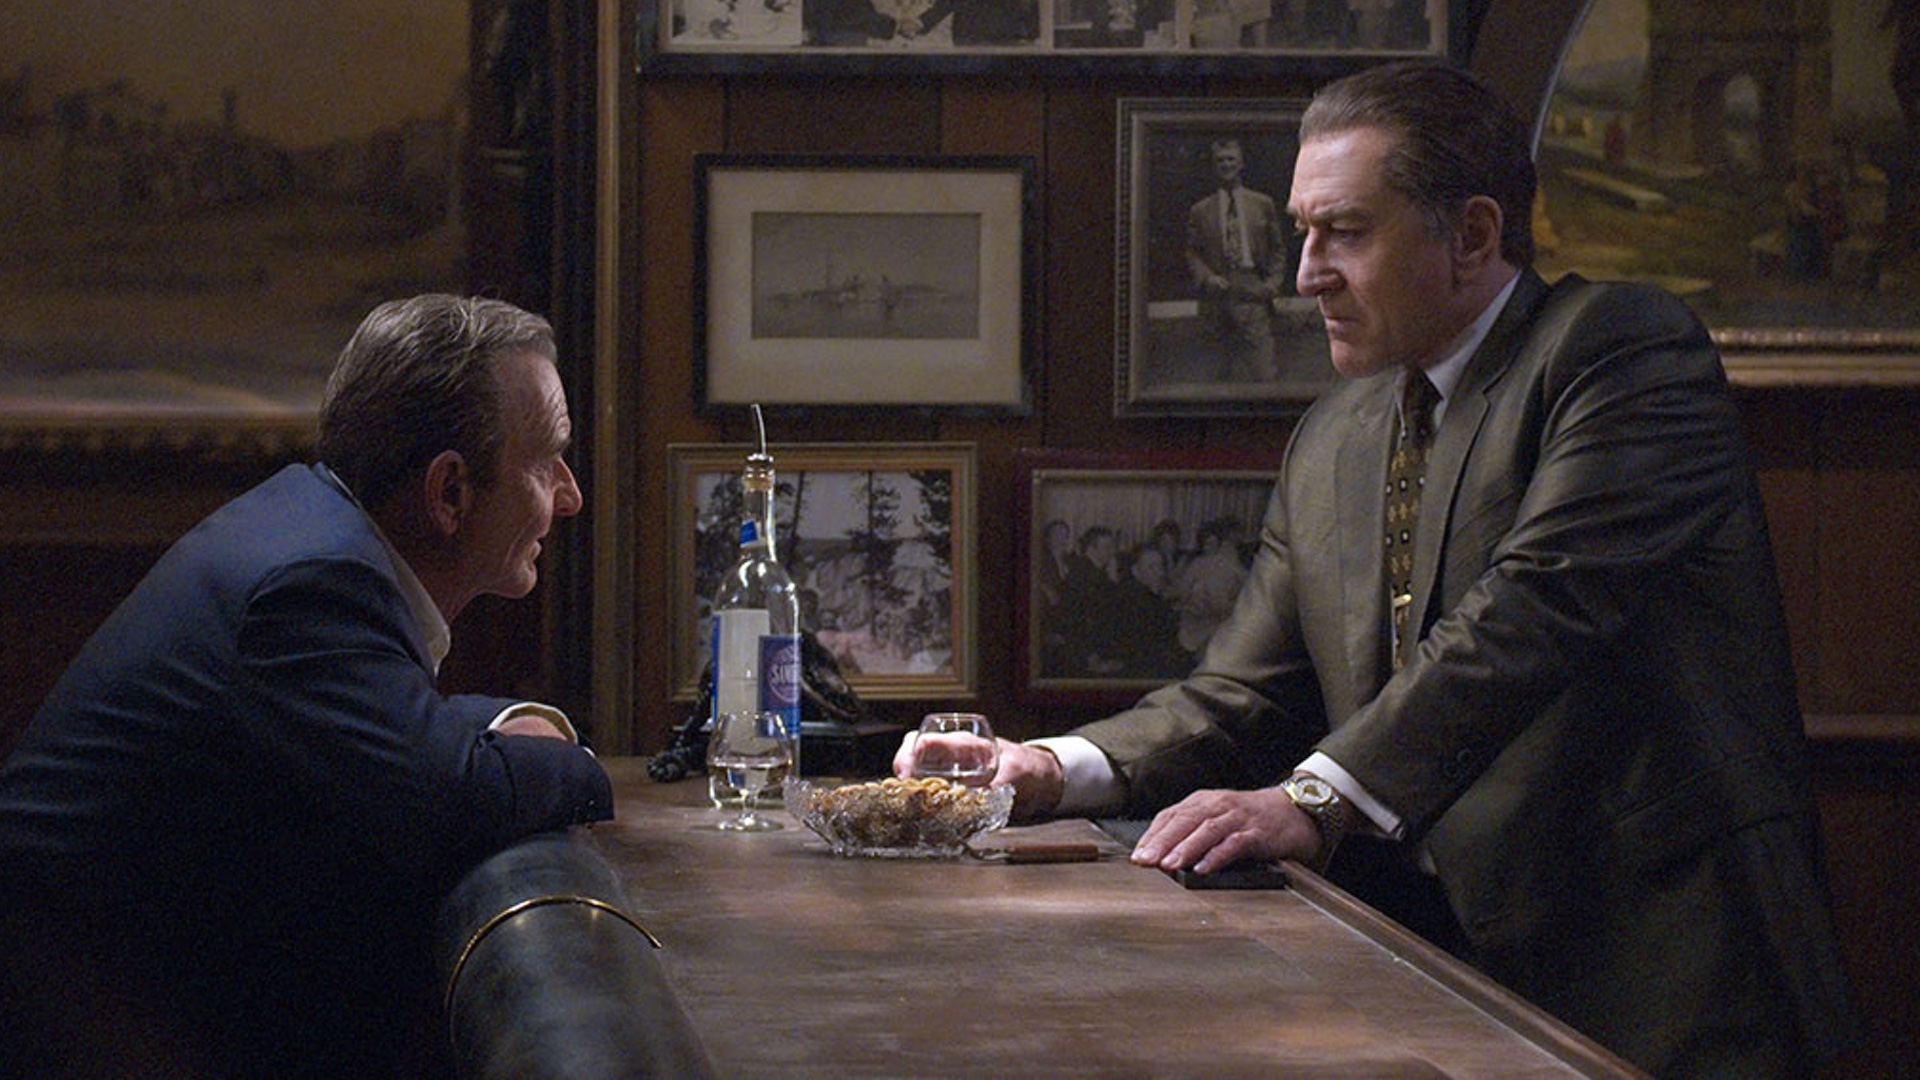 first-look-at-martin-scorseses-the-irishman-which-will-premiere-at-new-york-film-festival-social.jpg